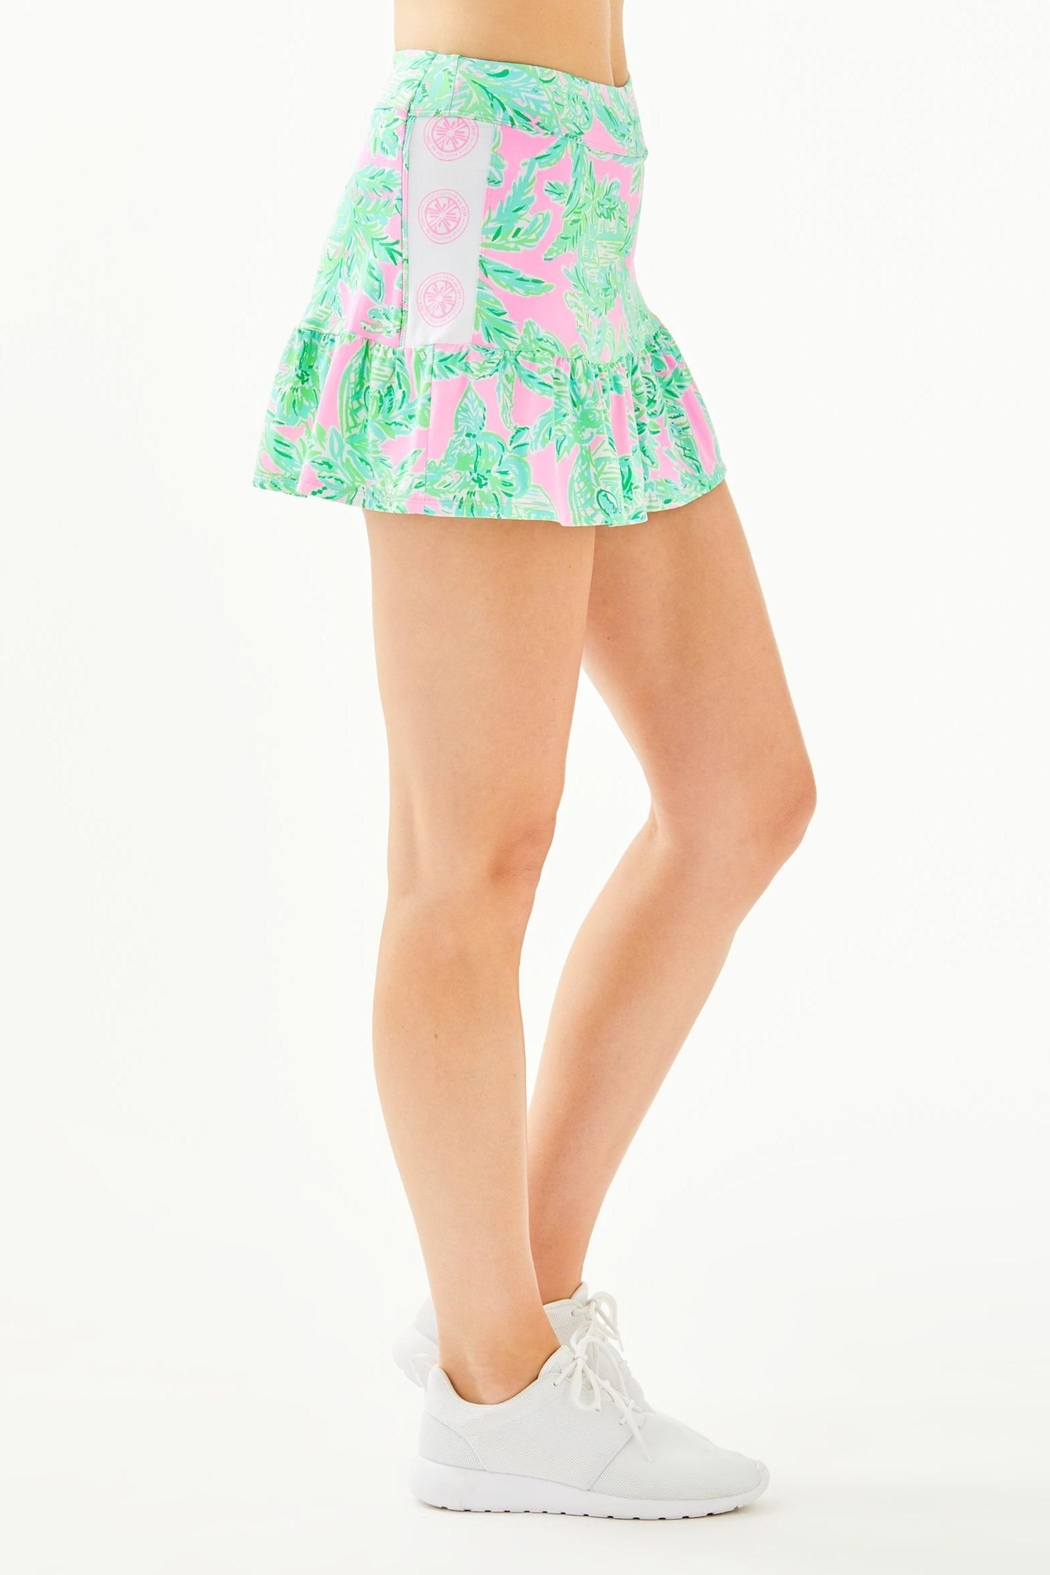 Lilly Pulitzer Luxletic Atalia Skort - Side Cropped Image